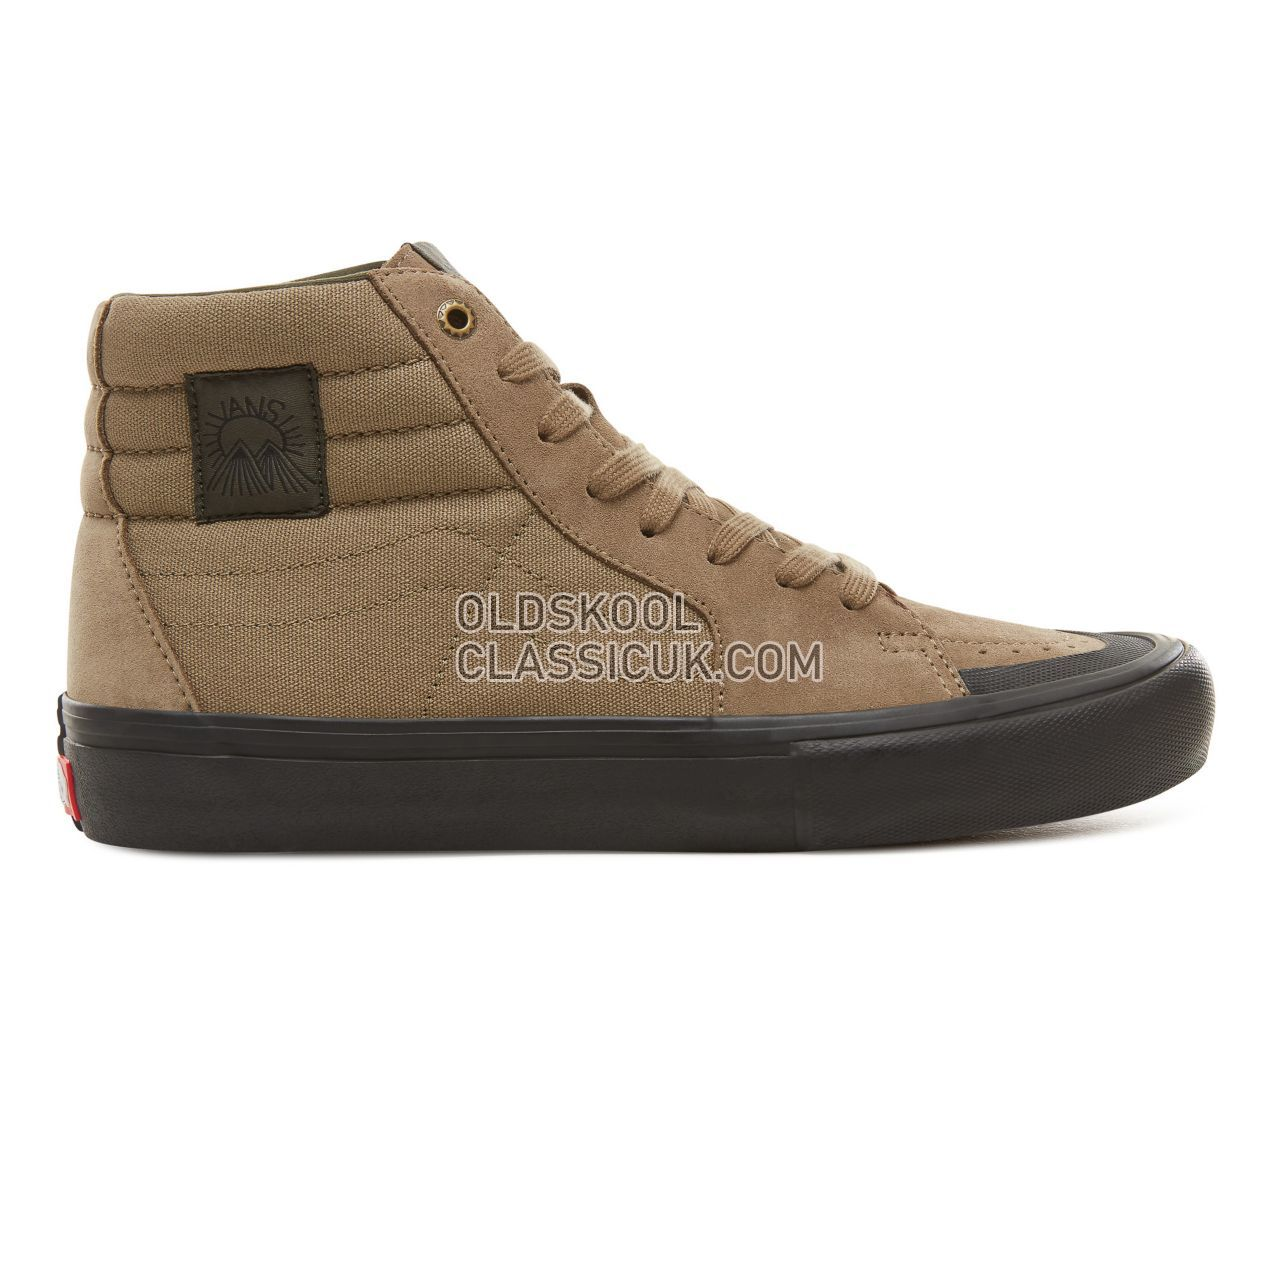 Vans Dakota Roche Sk8-Hi Pro Sneakers Mens (Dakota Roche) Covert Green/Black V00VHGU23 Shoes